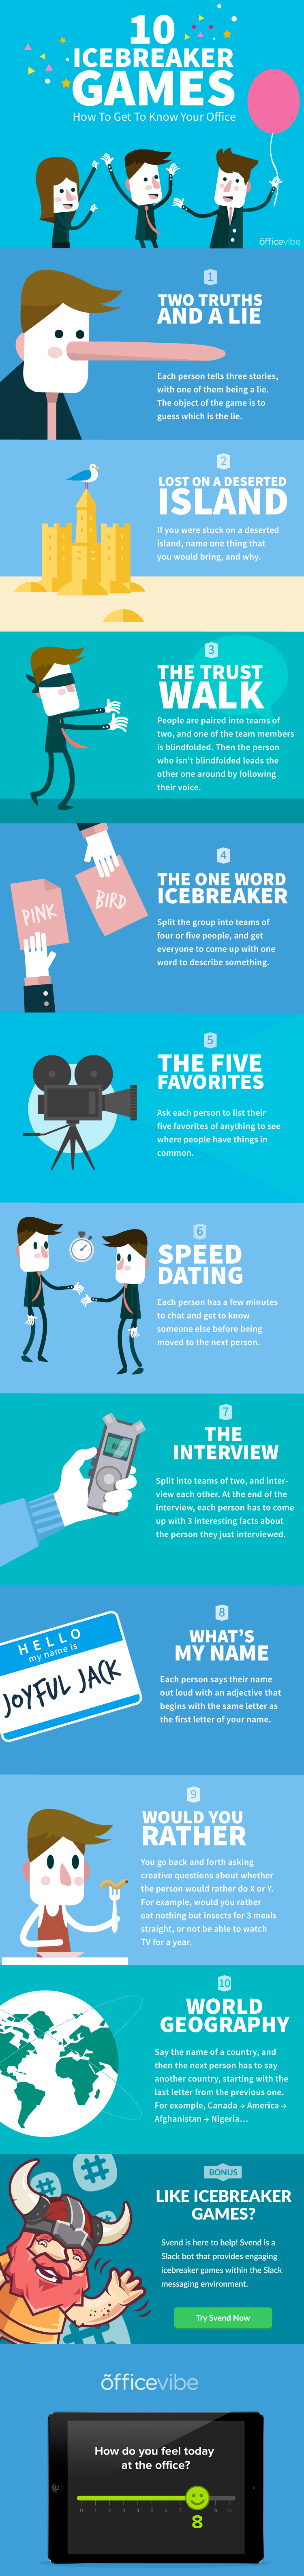 10 Icebreaker Office Games Infographic